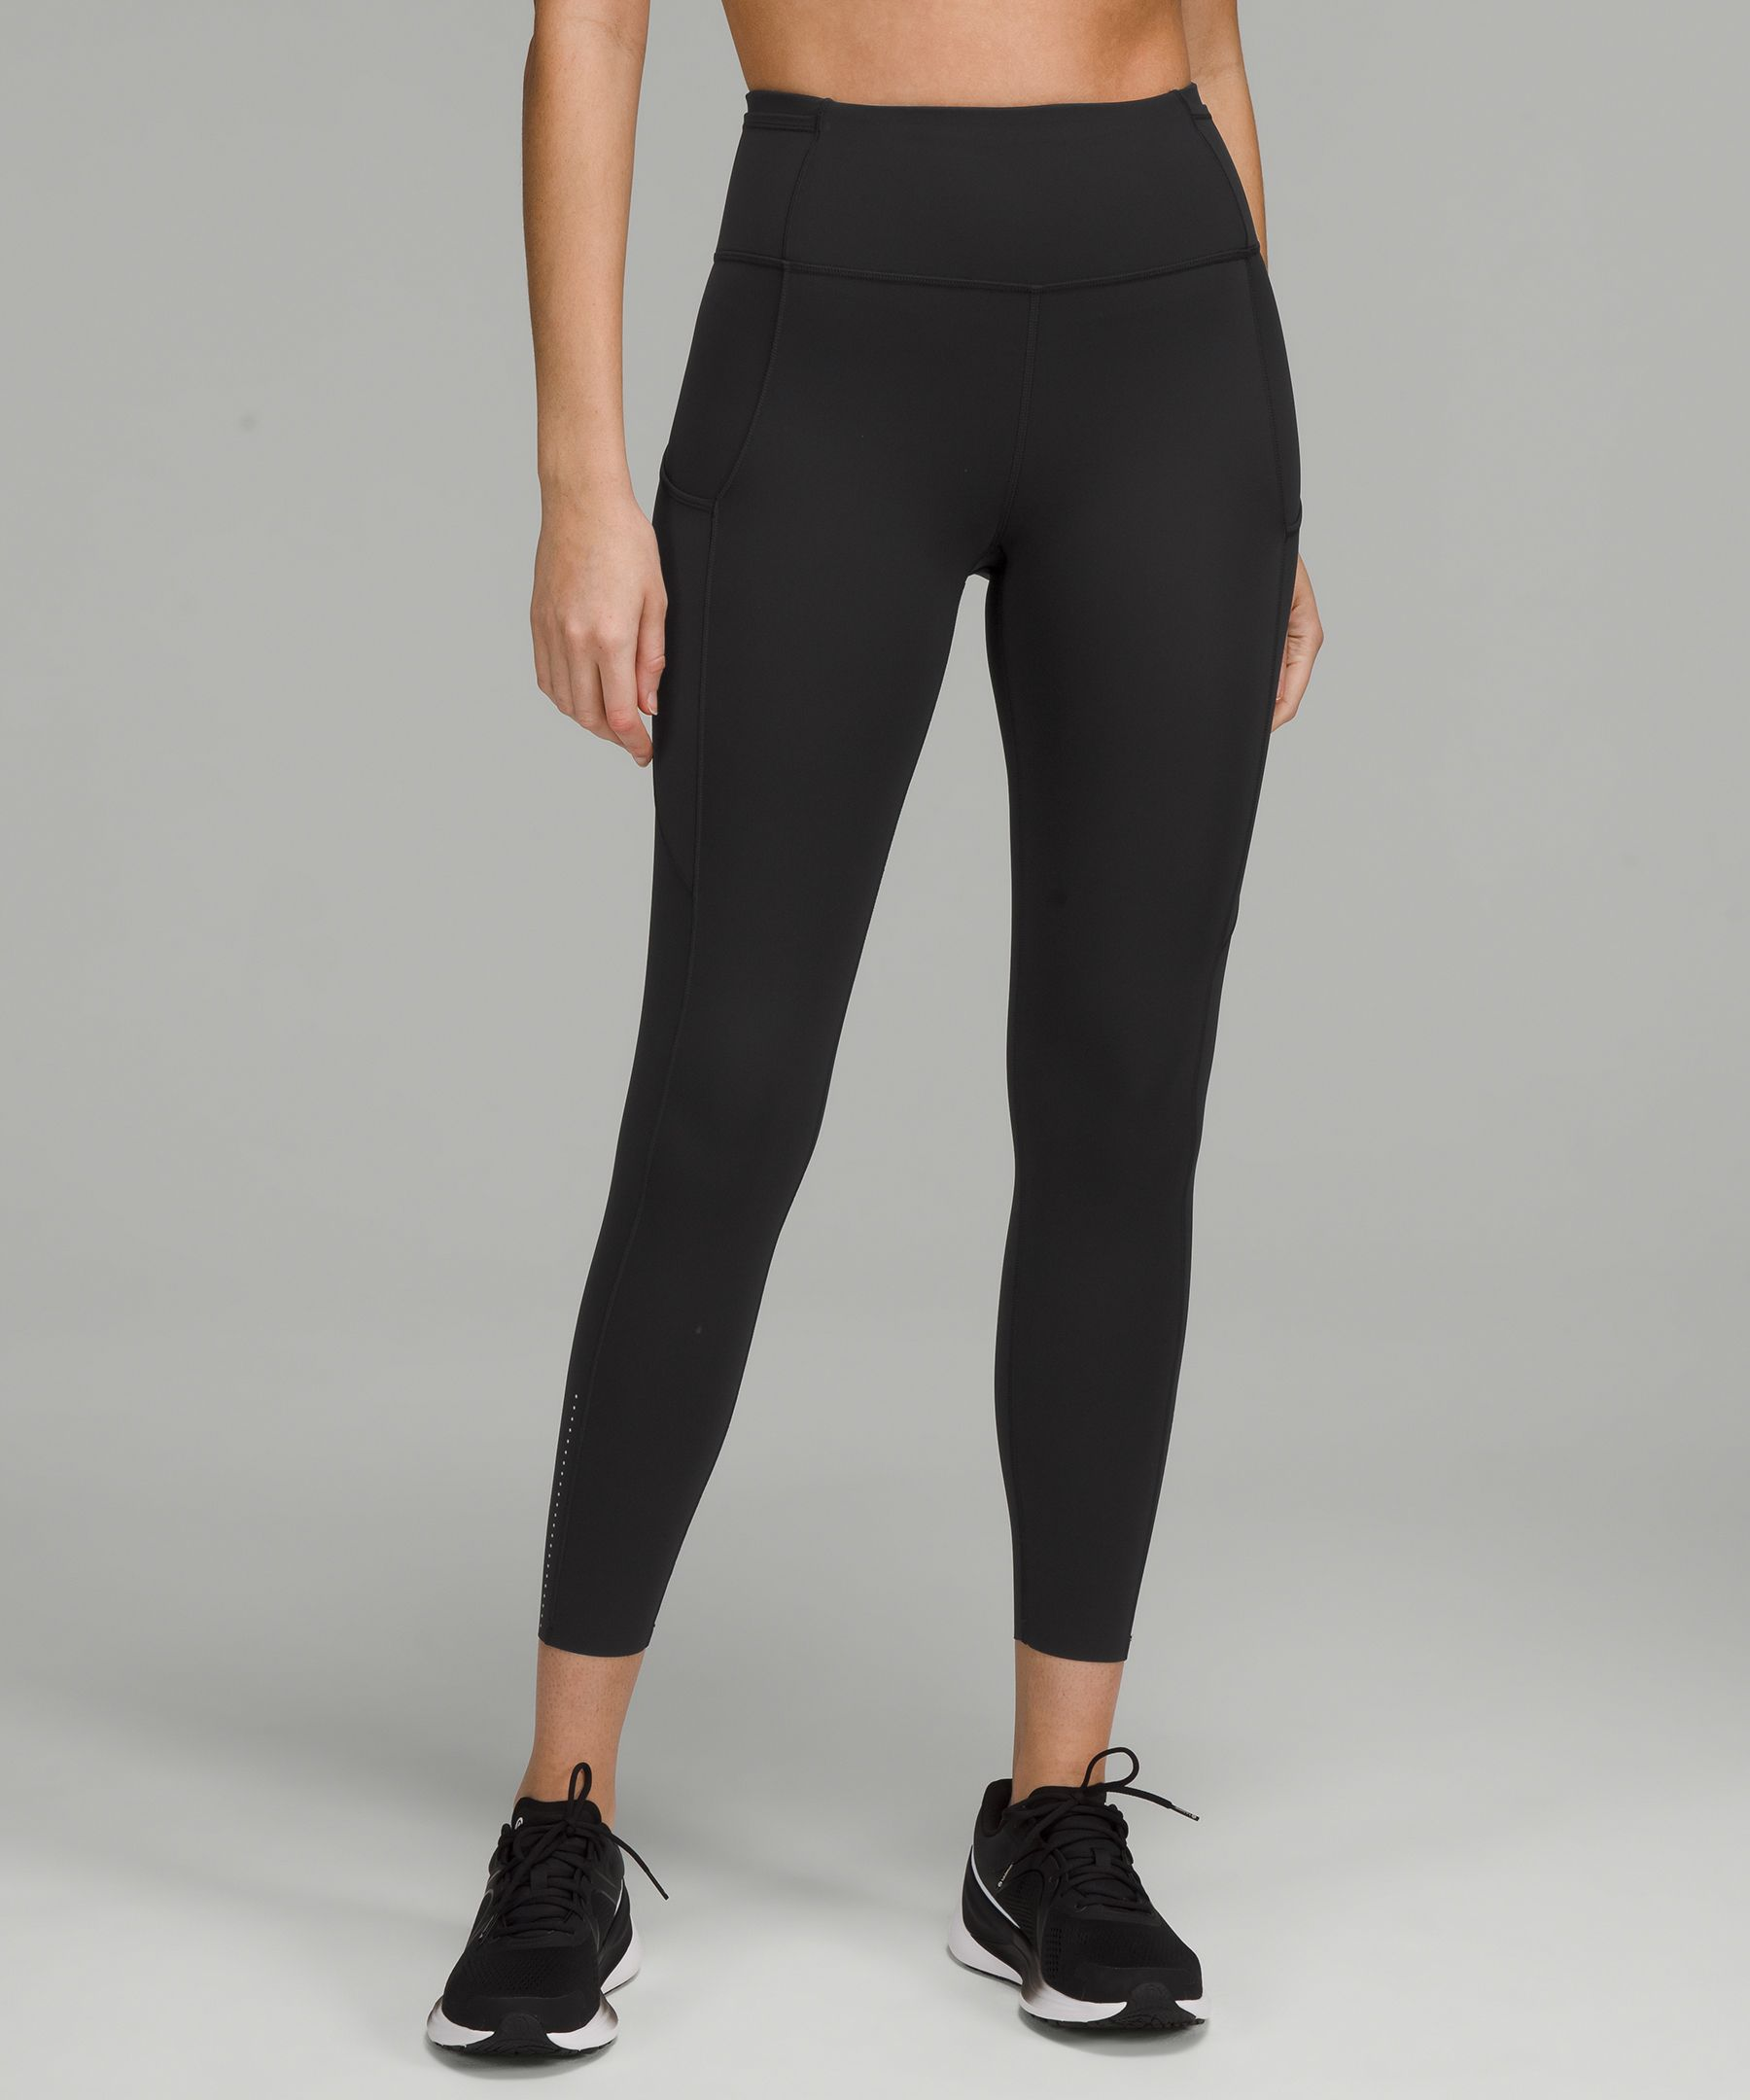 9a75b3c5b48d7 fast and free tight | women's pants | lululemon athletica